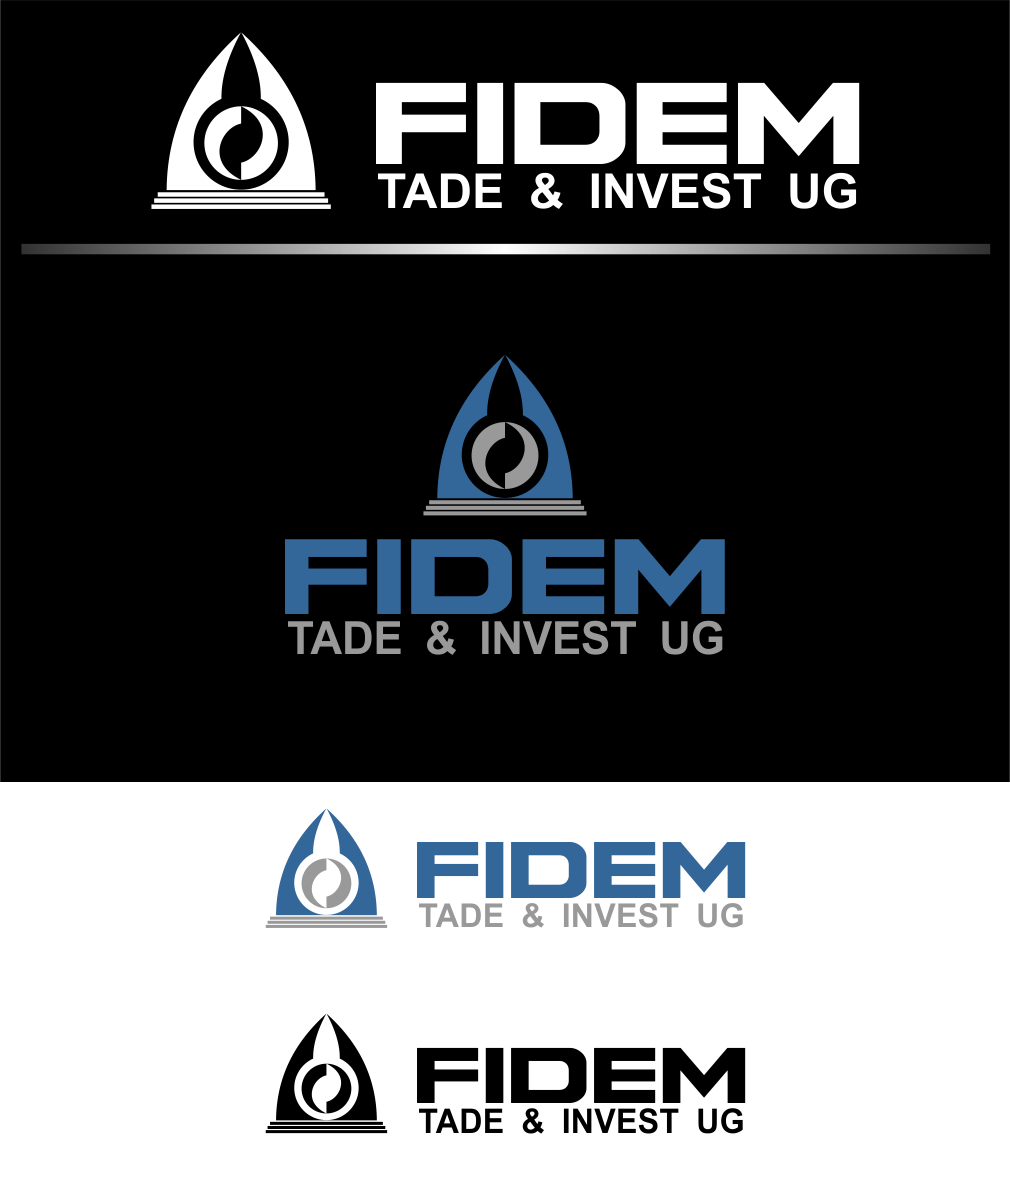 Logo Design by Agus Martoyo - Entry No. 398 in the Logo Design Contest Professional Logo Design for FIDEM Trade & Invest UG.